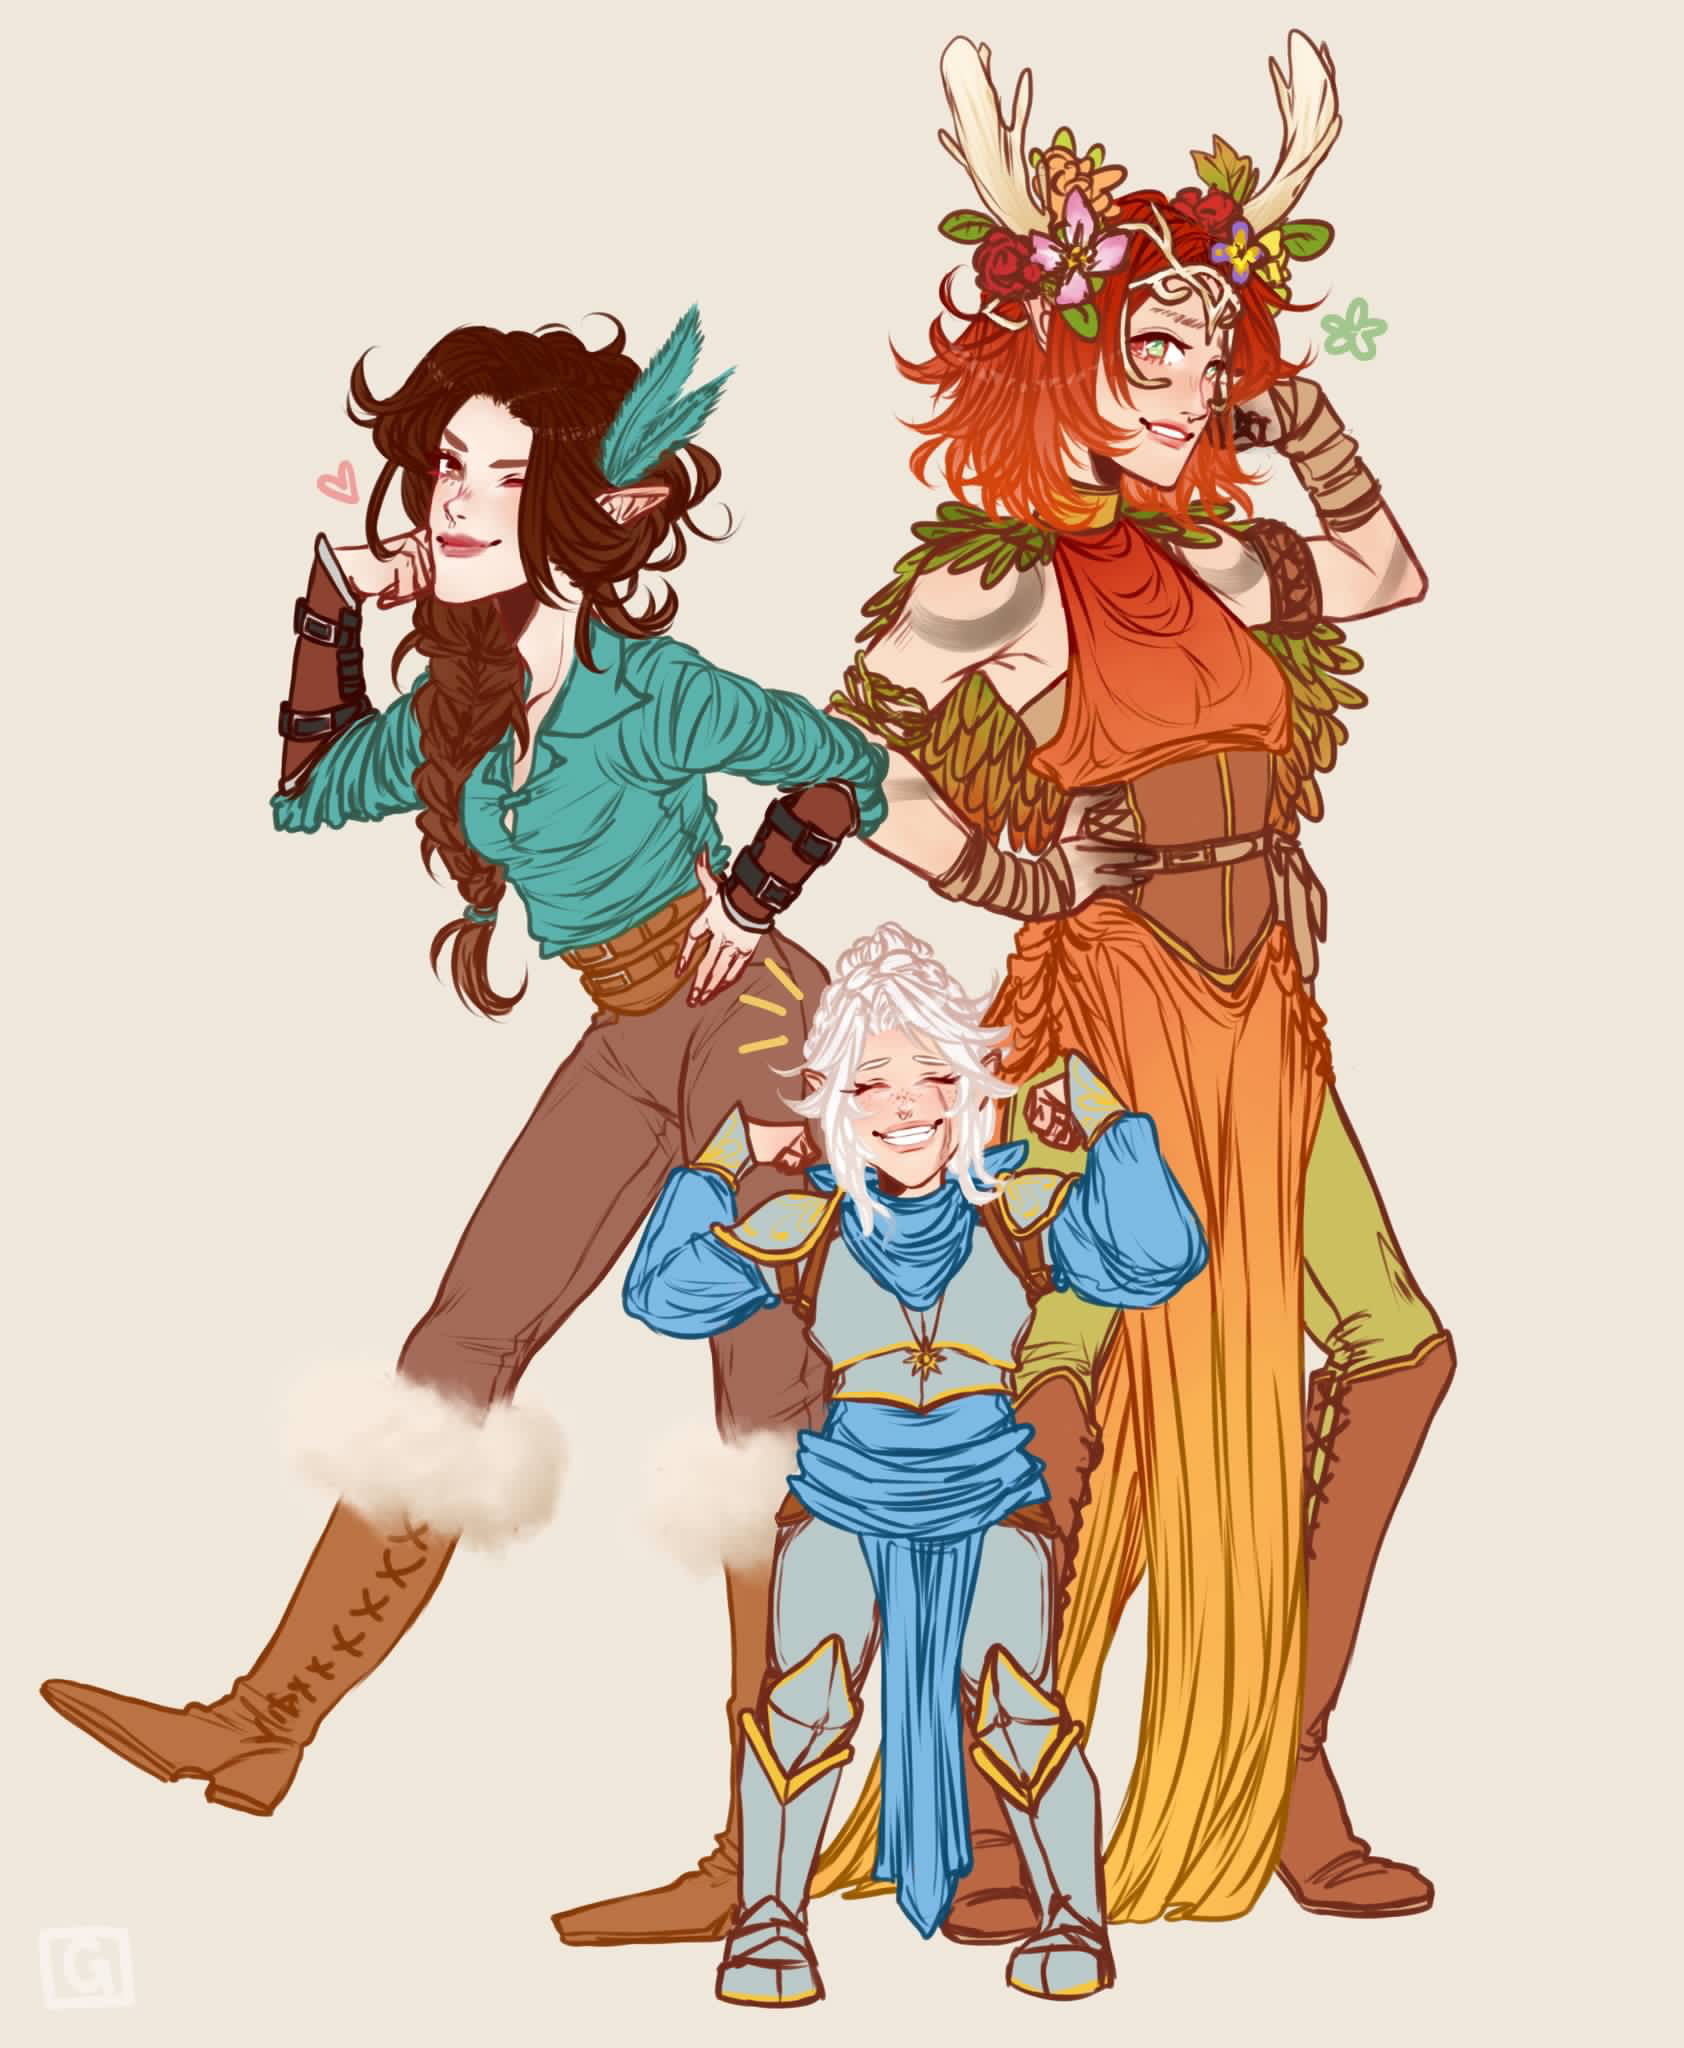 Keyleth Vex And Pike From Vox Machina And Critical Role Critical Role Fan Art Critical Role Characters Critical Role I would love, love, for our druid to look at yasha and say you remind me of someone. keyleth vex and pike from vox machina